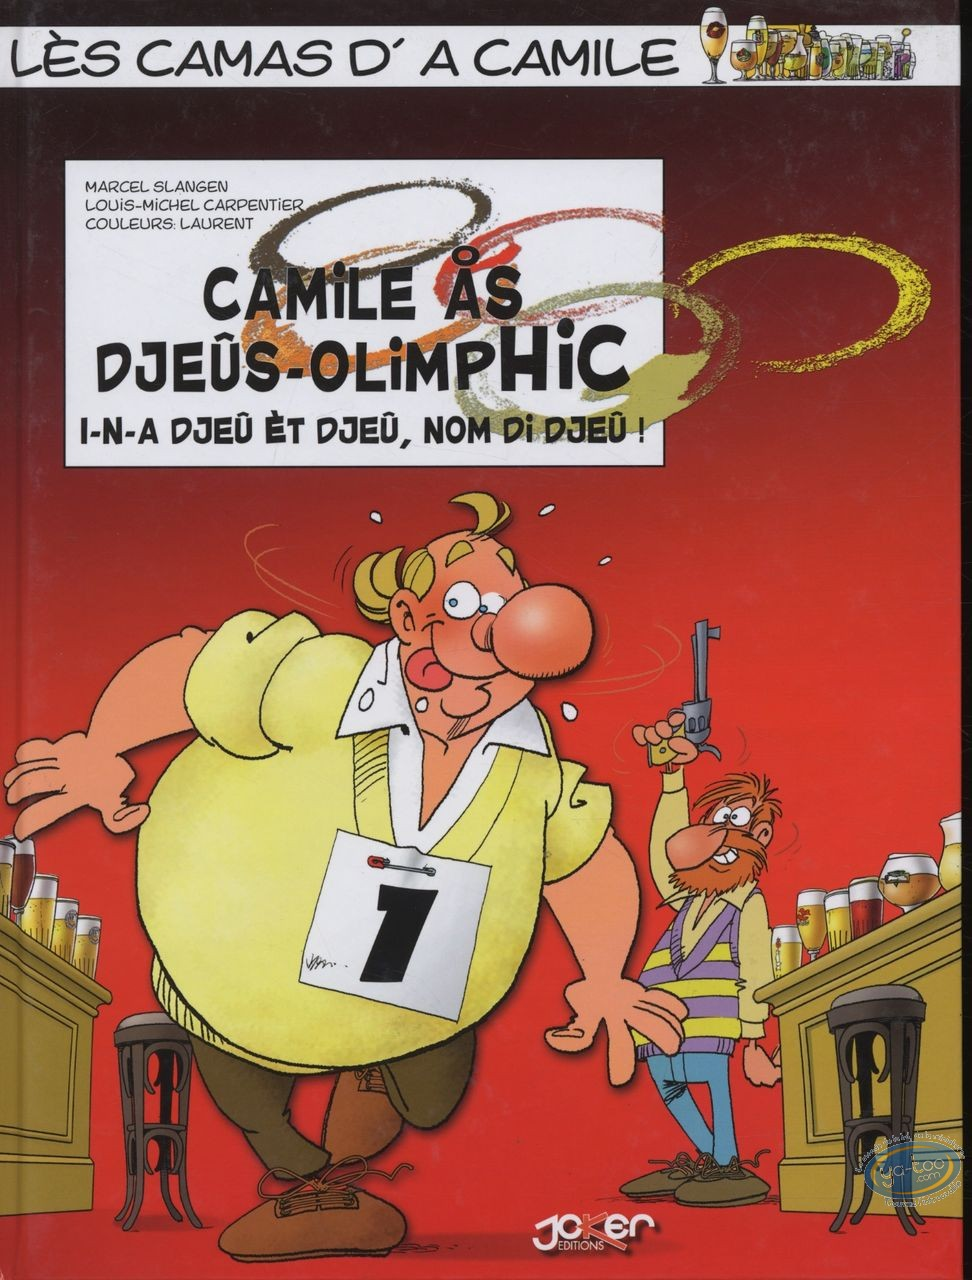 Reduced price European comic books, Poje :  Les Potes à Poje Poje aux Jeux Olympils - version Liegeoise (used)